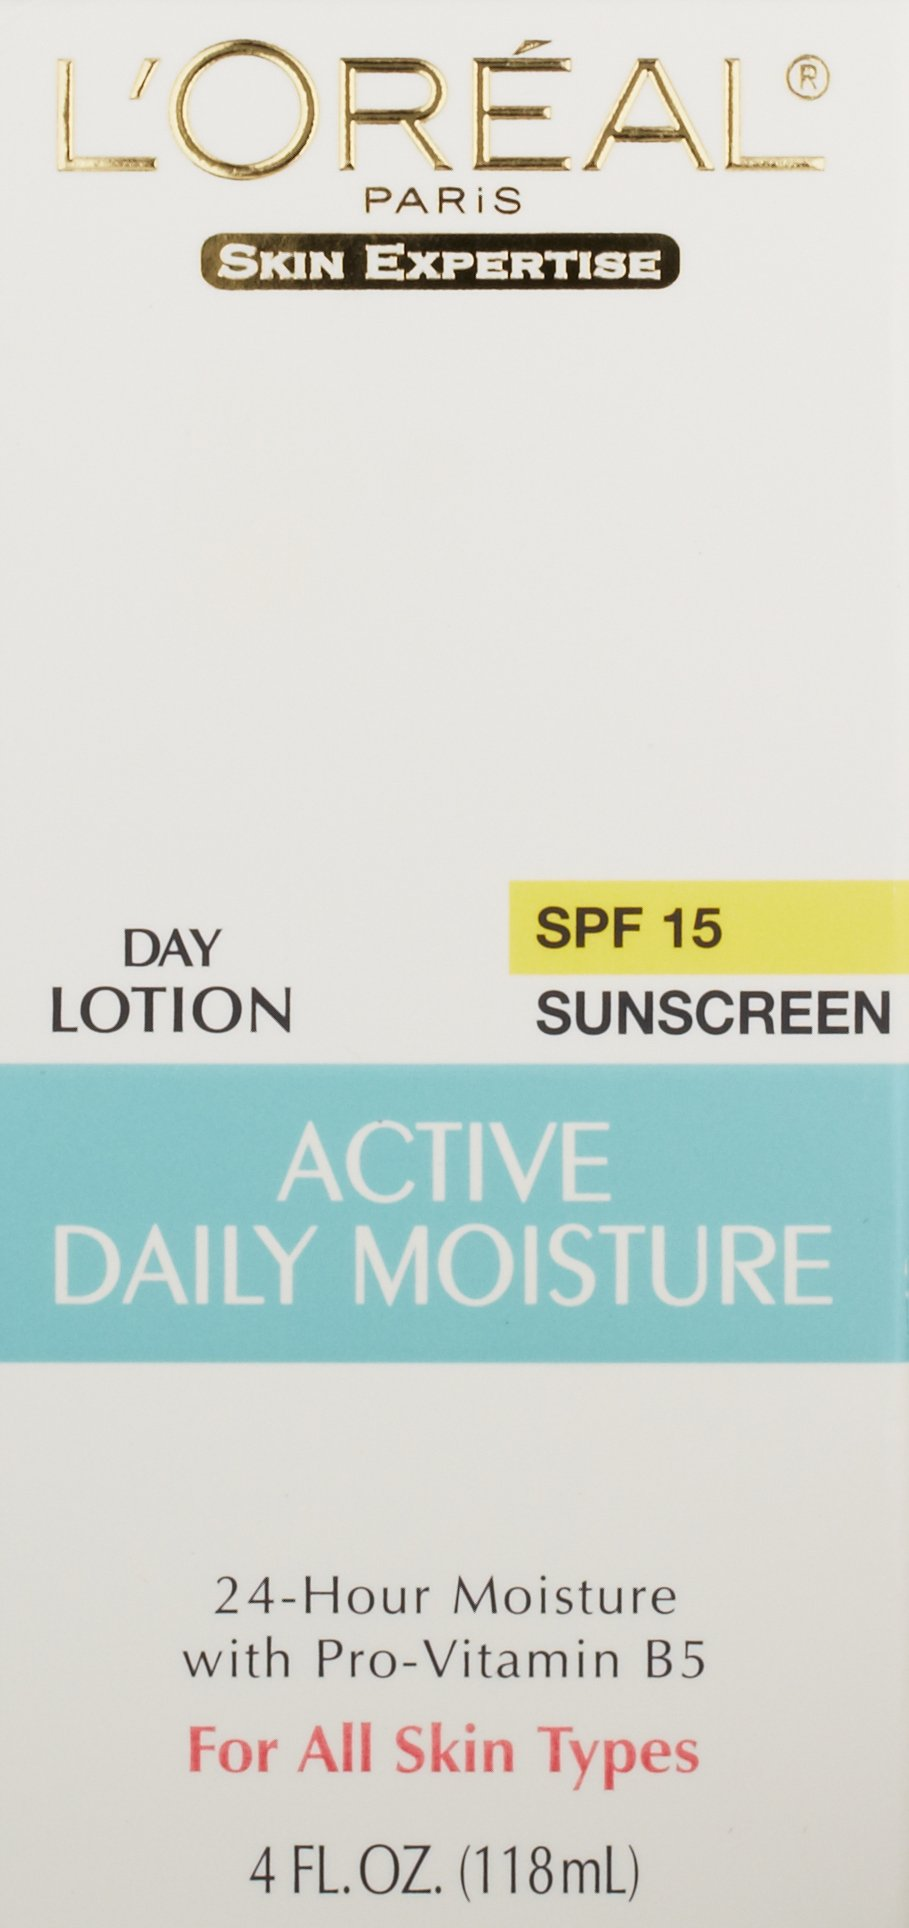 L'Oreal Paris Skincare Active Daily Moisture Face Lotion with SPF 15, Face Moisturizer with Pro-Vitamin B5, For All Skin Types, 4.0 oz